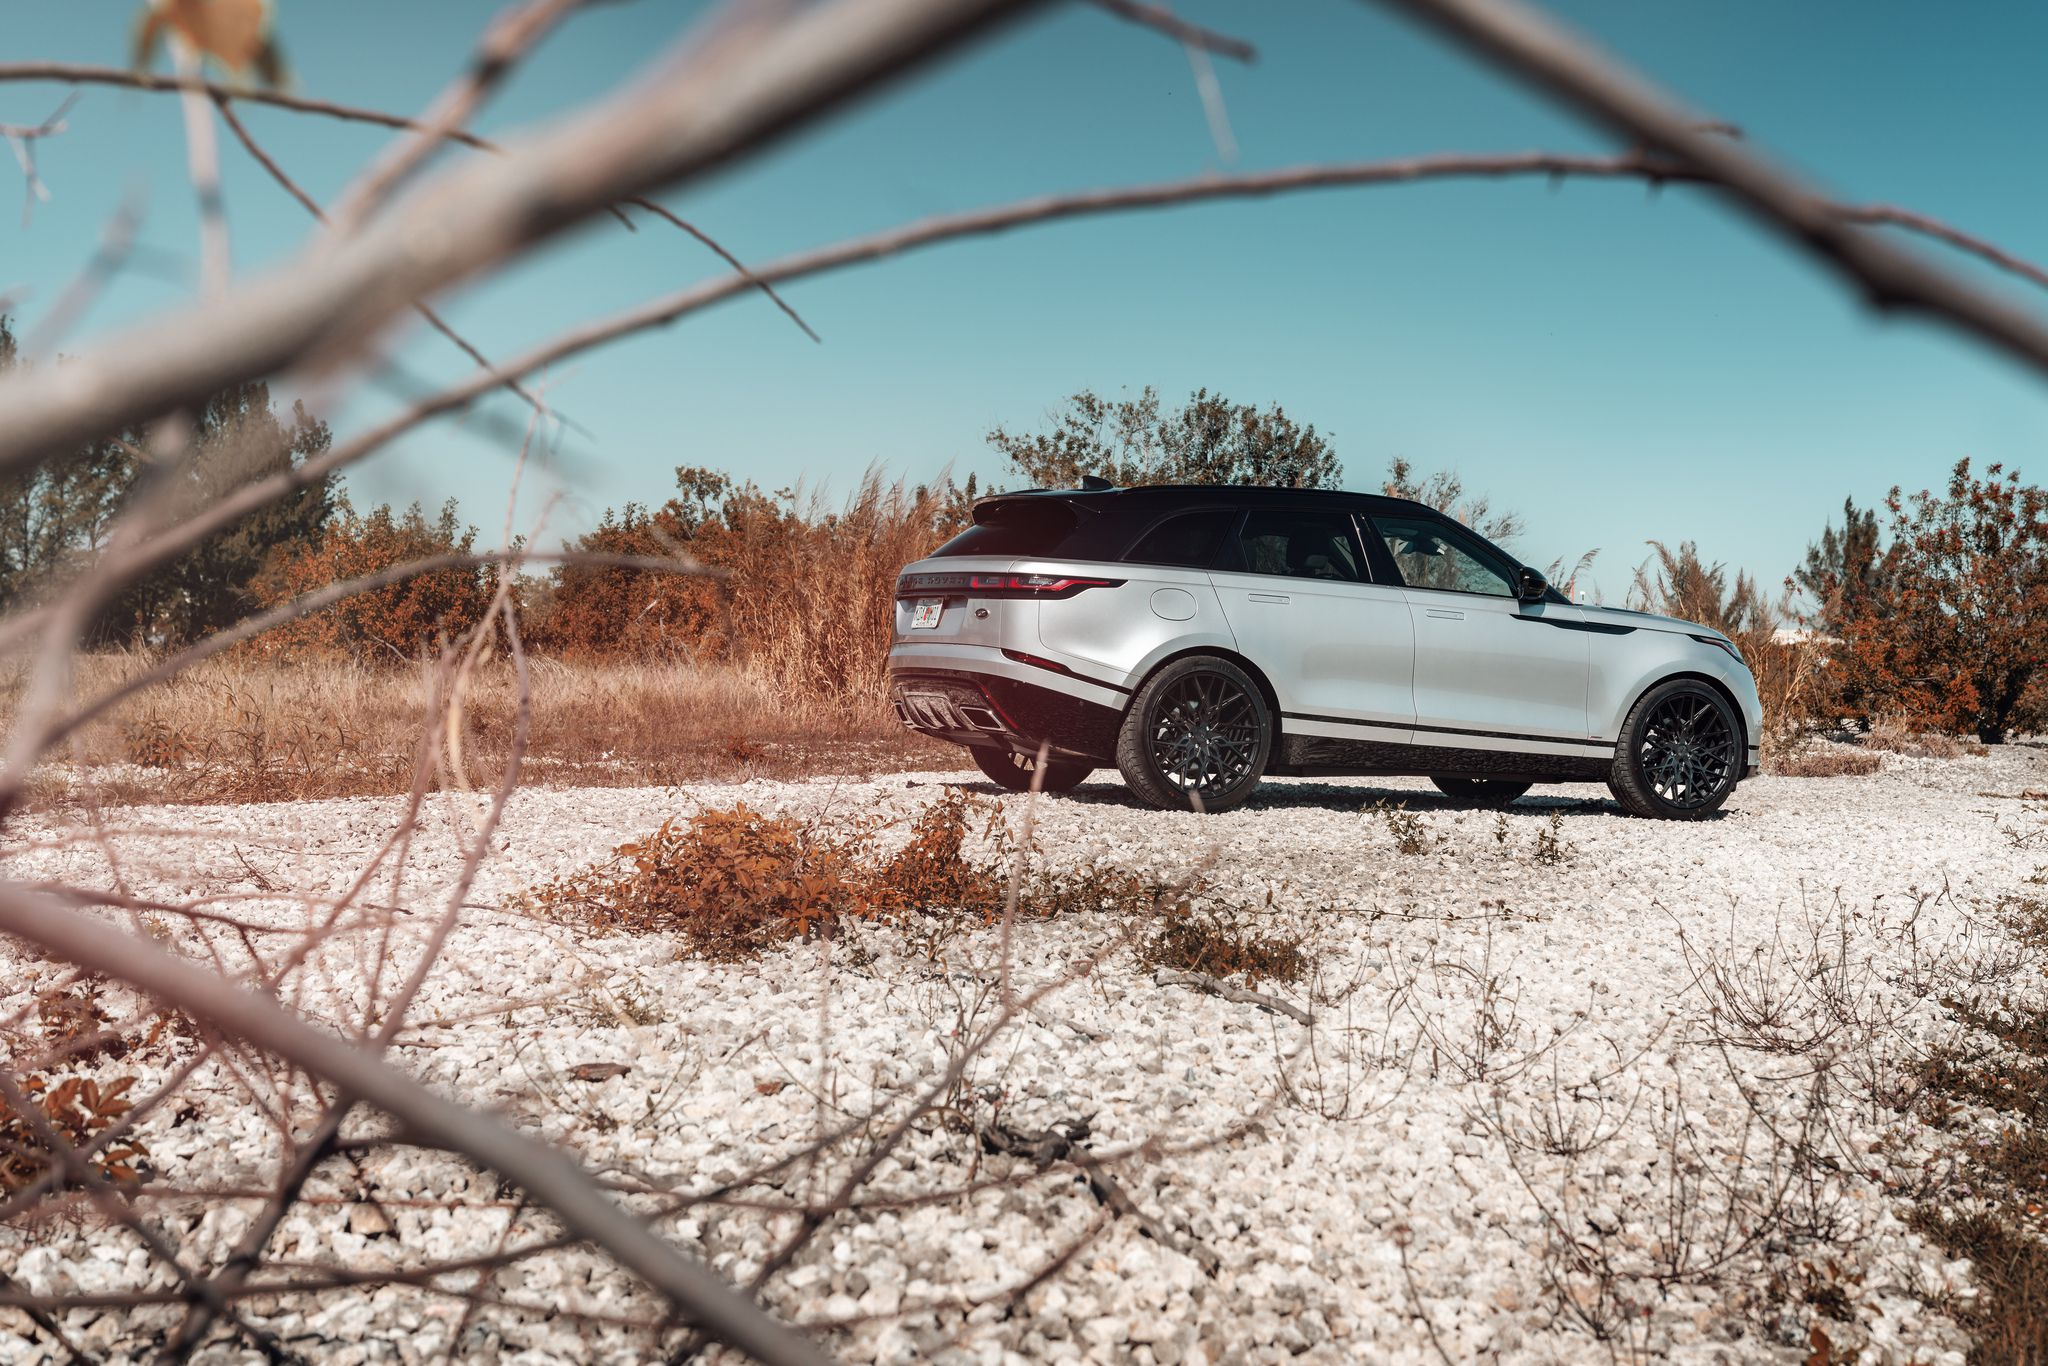 Photo 03: Range Rover Velar